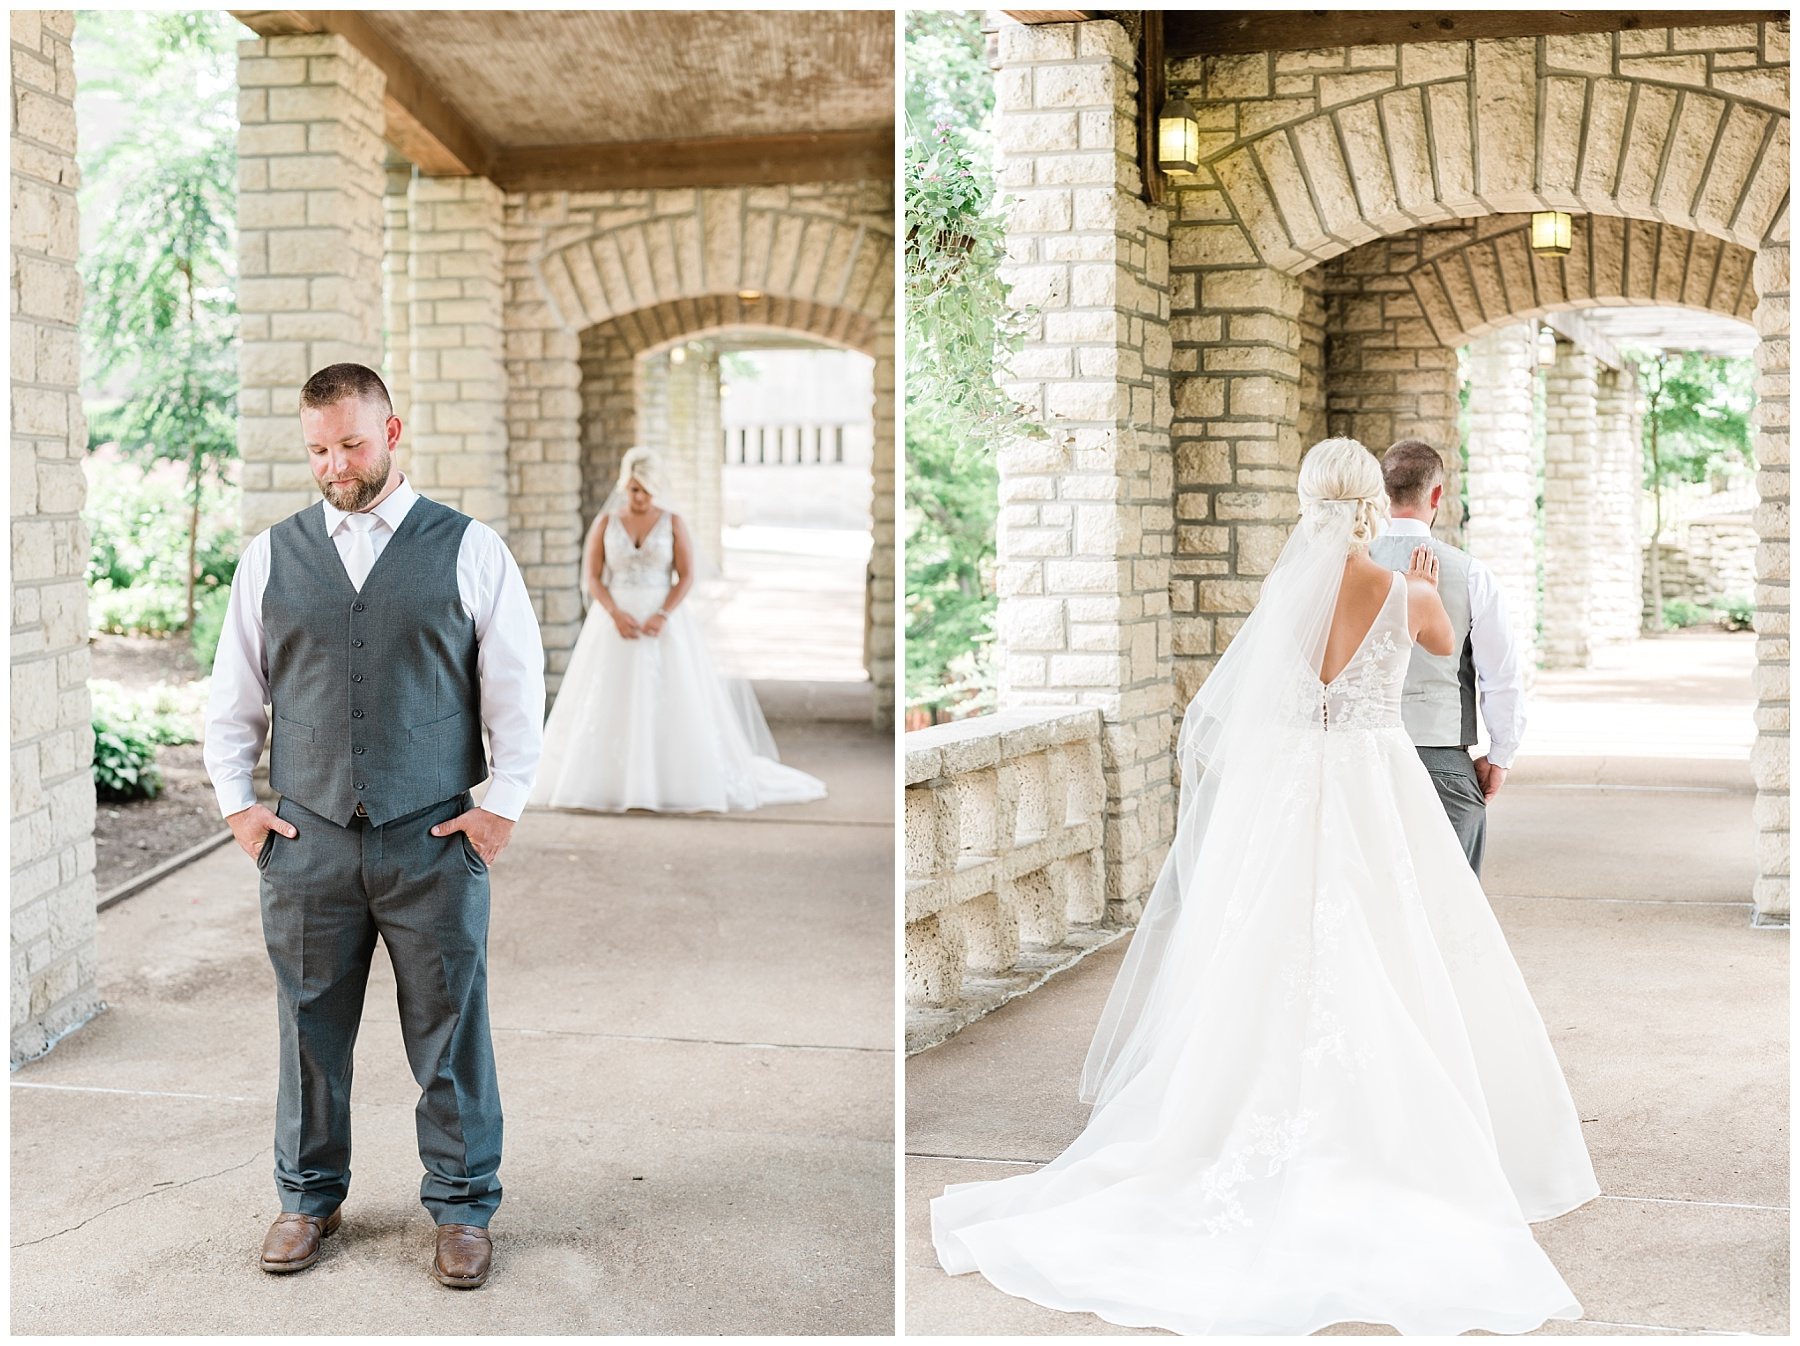 Rose Gold, White, and Greenery High Class Summer Wedding at The Millbottom in Downtown Jefferson City by Kelsi Kliethermes Photography_0008.jpg